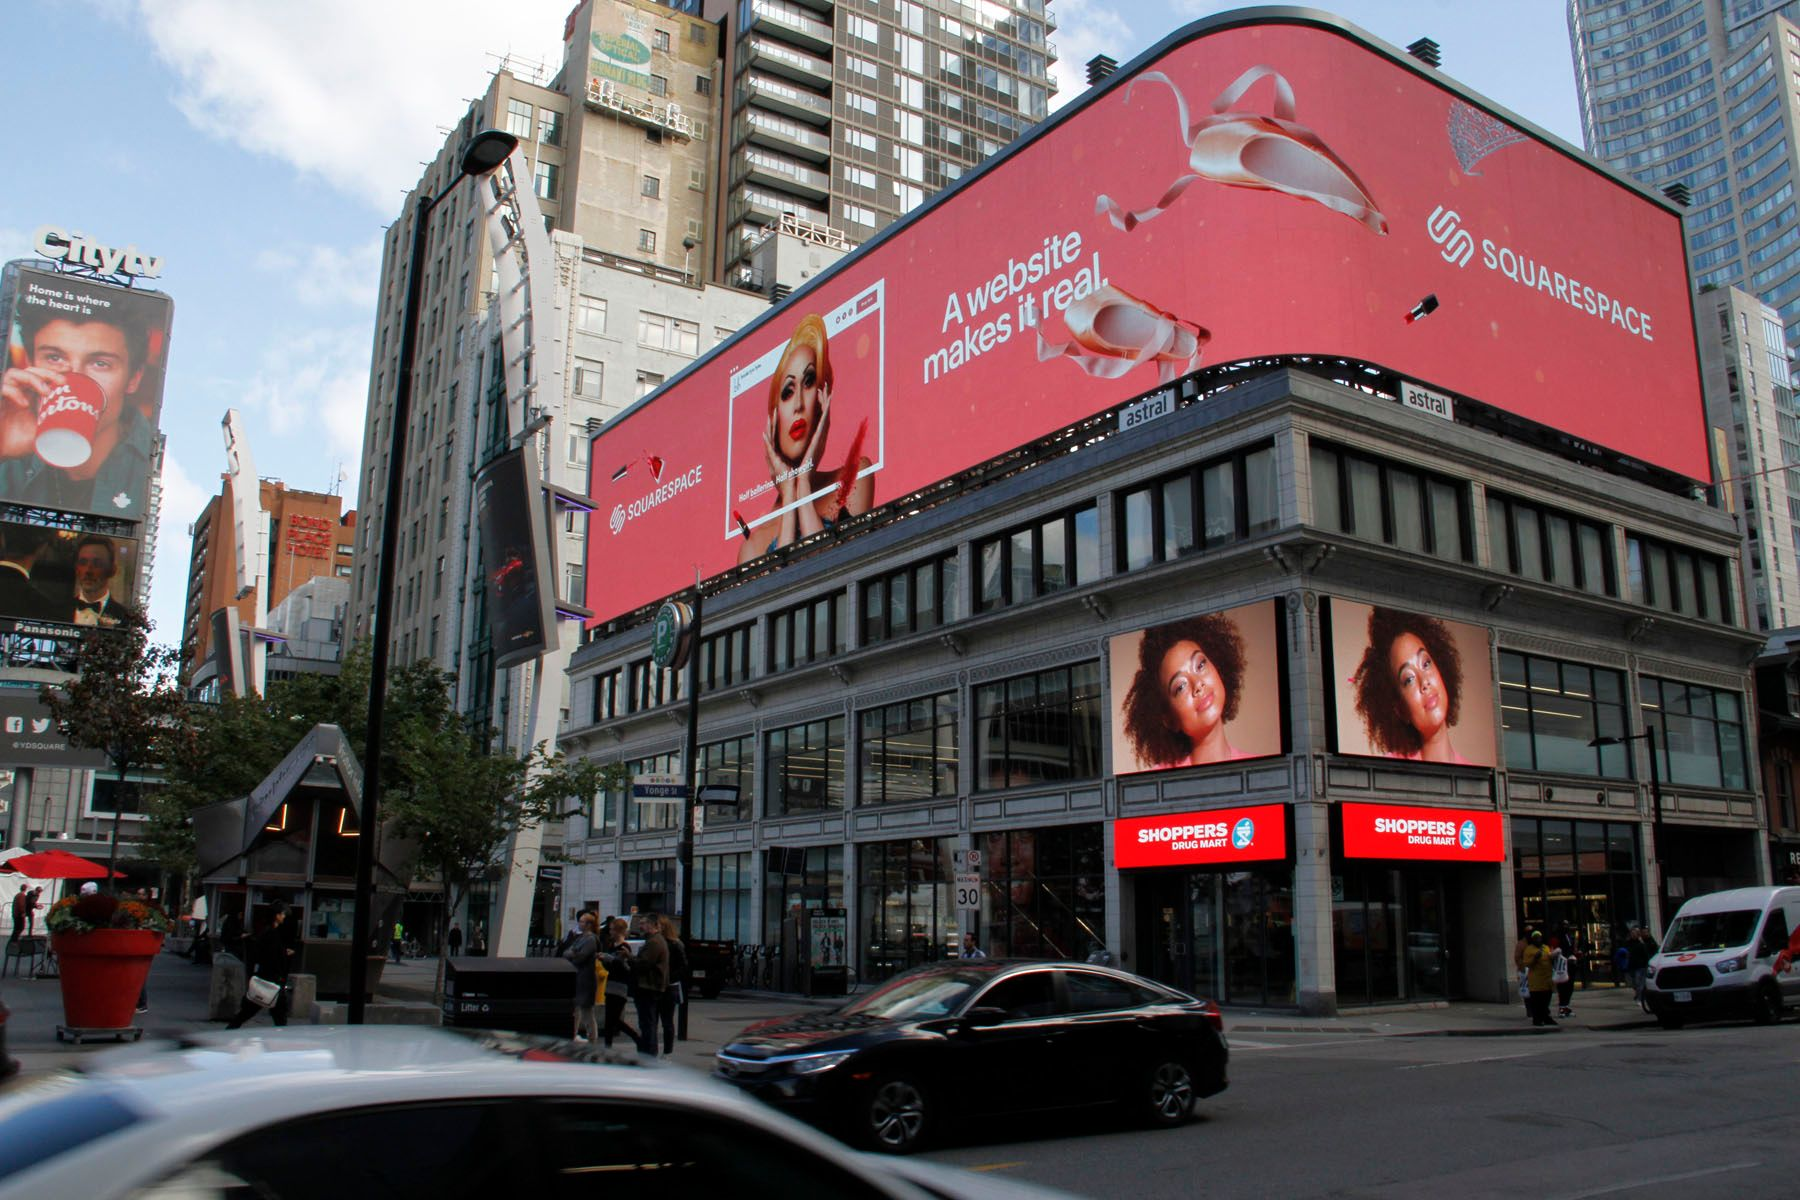 What Are the Benefits of Outdoor Advertising? | AdQuick